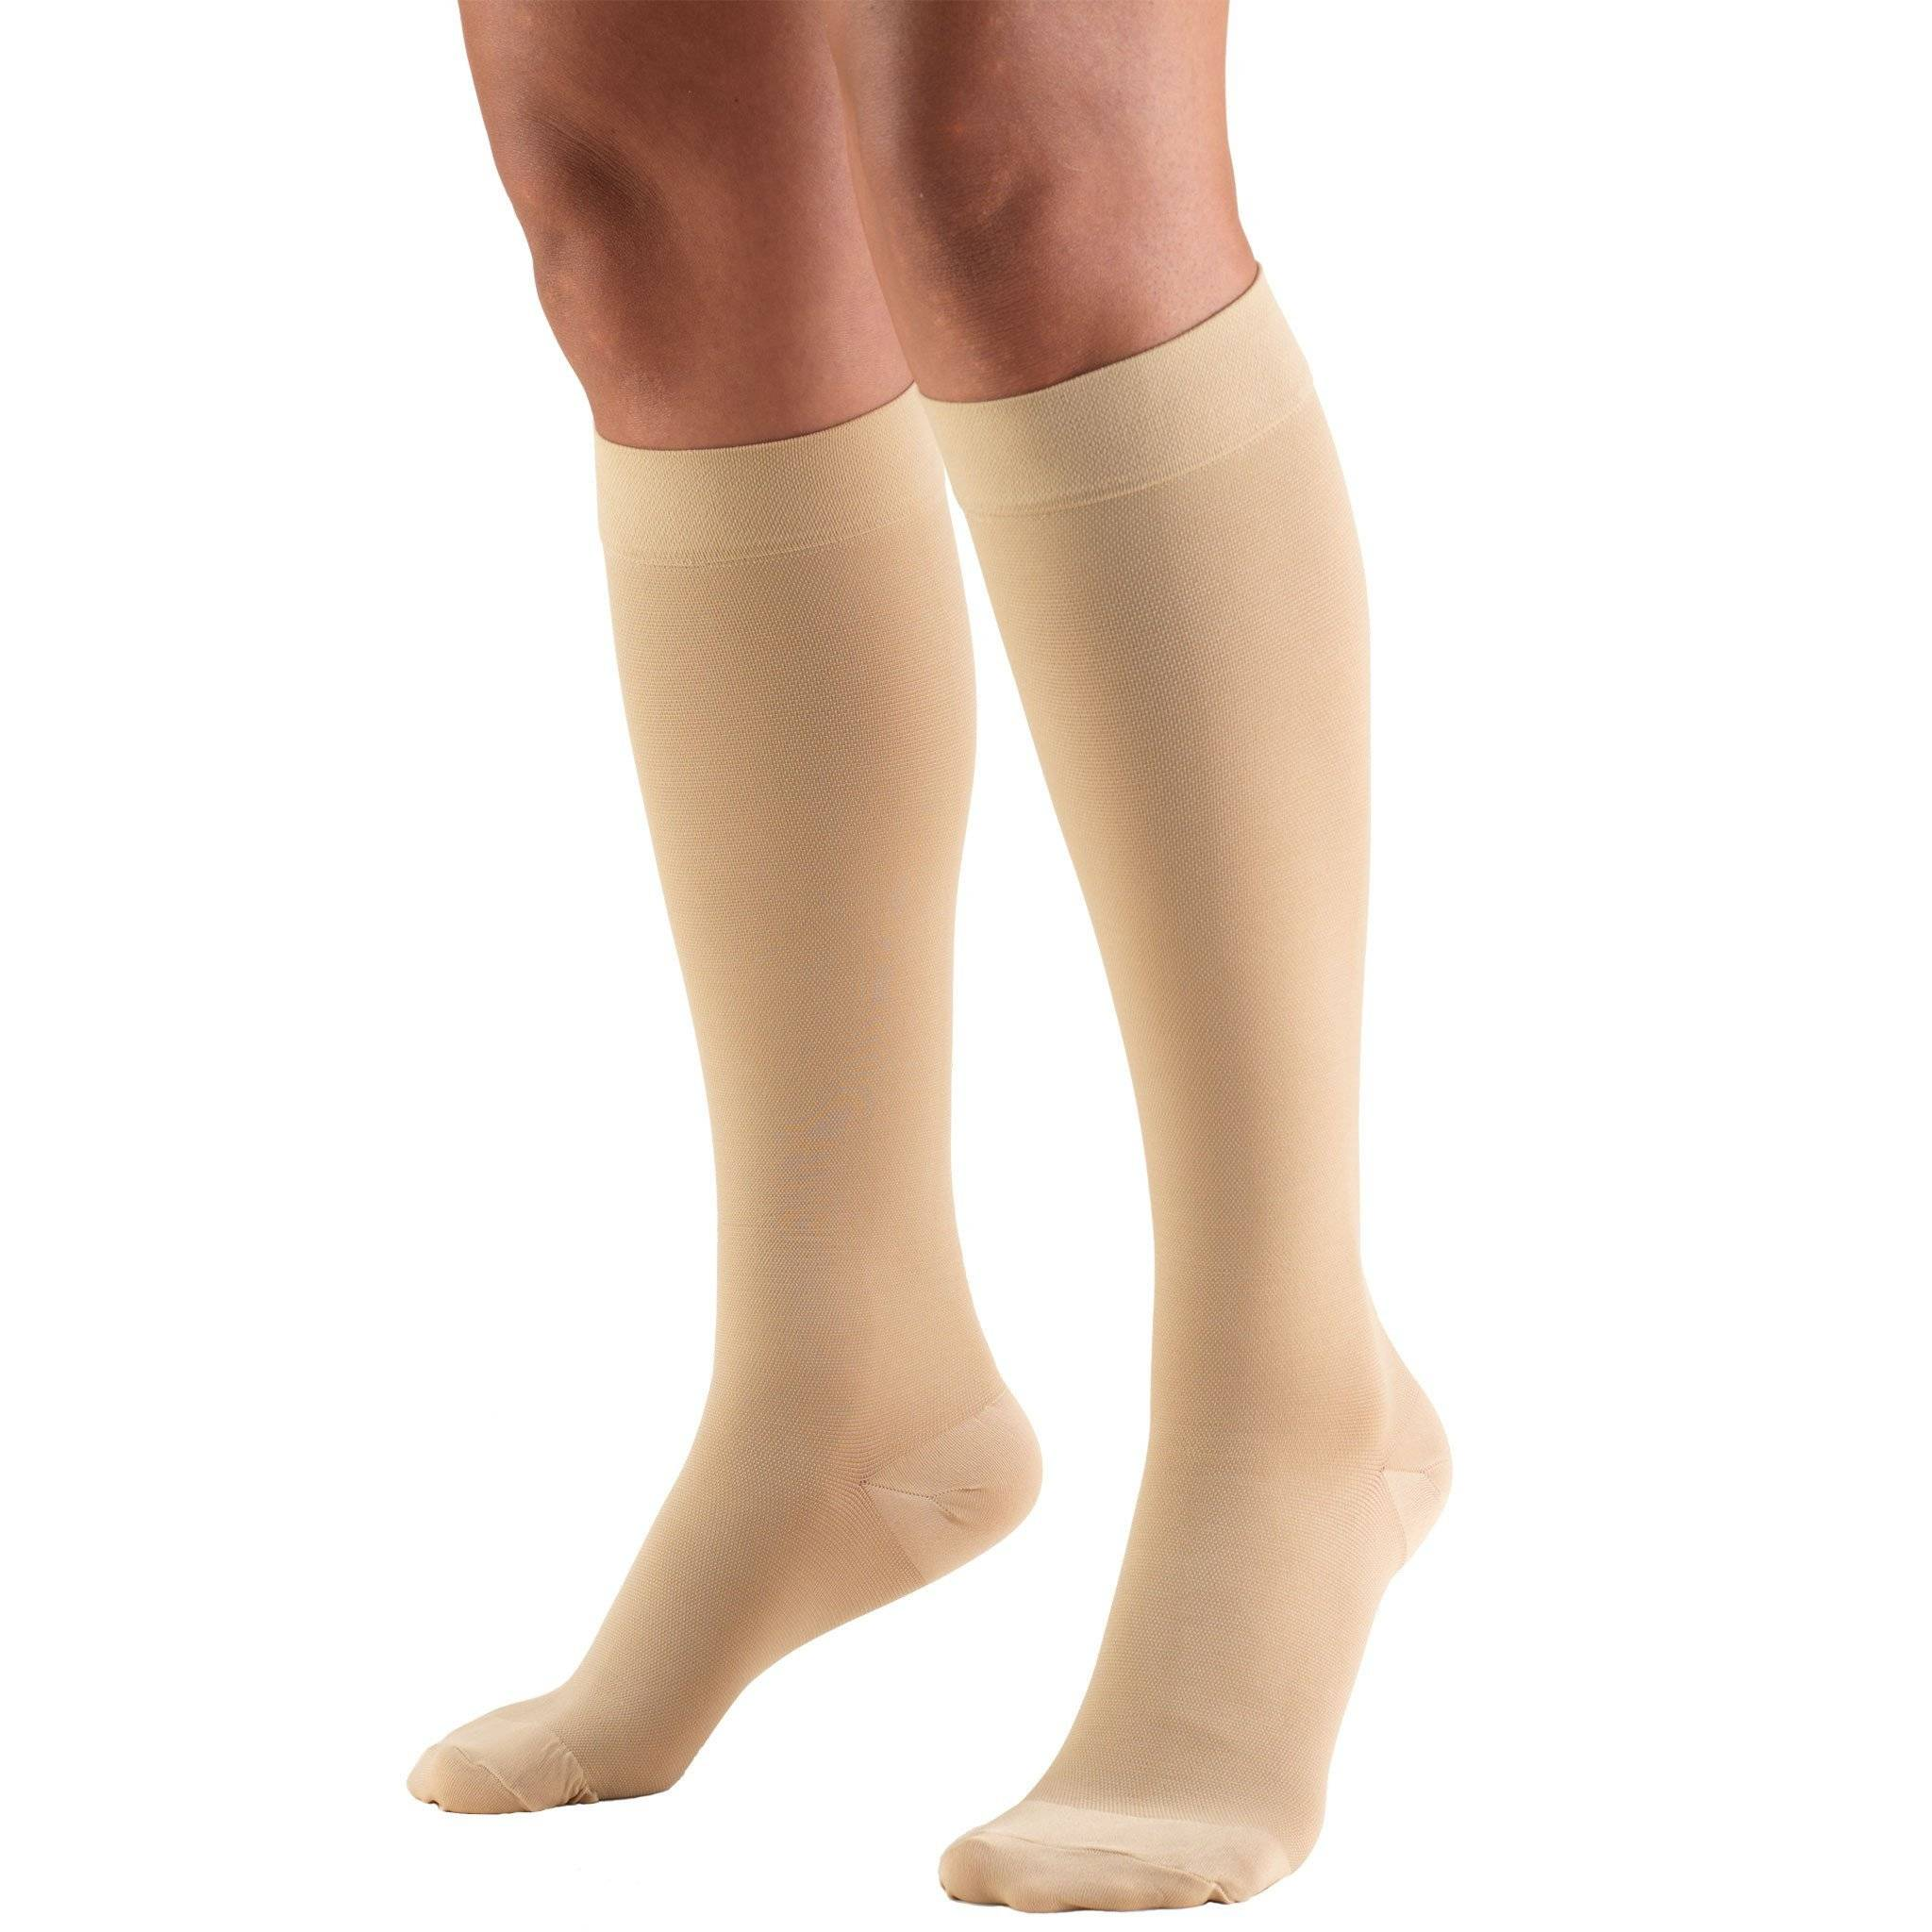 Knee High Medical Stockings